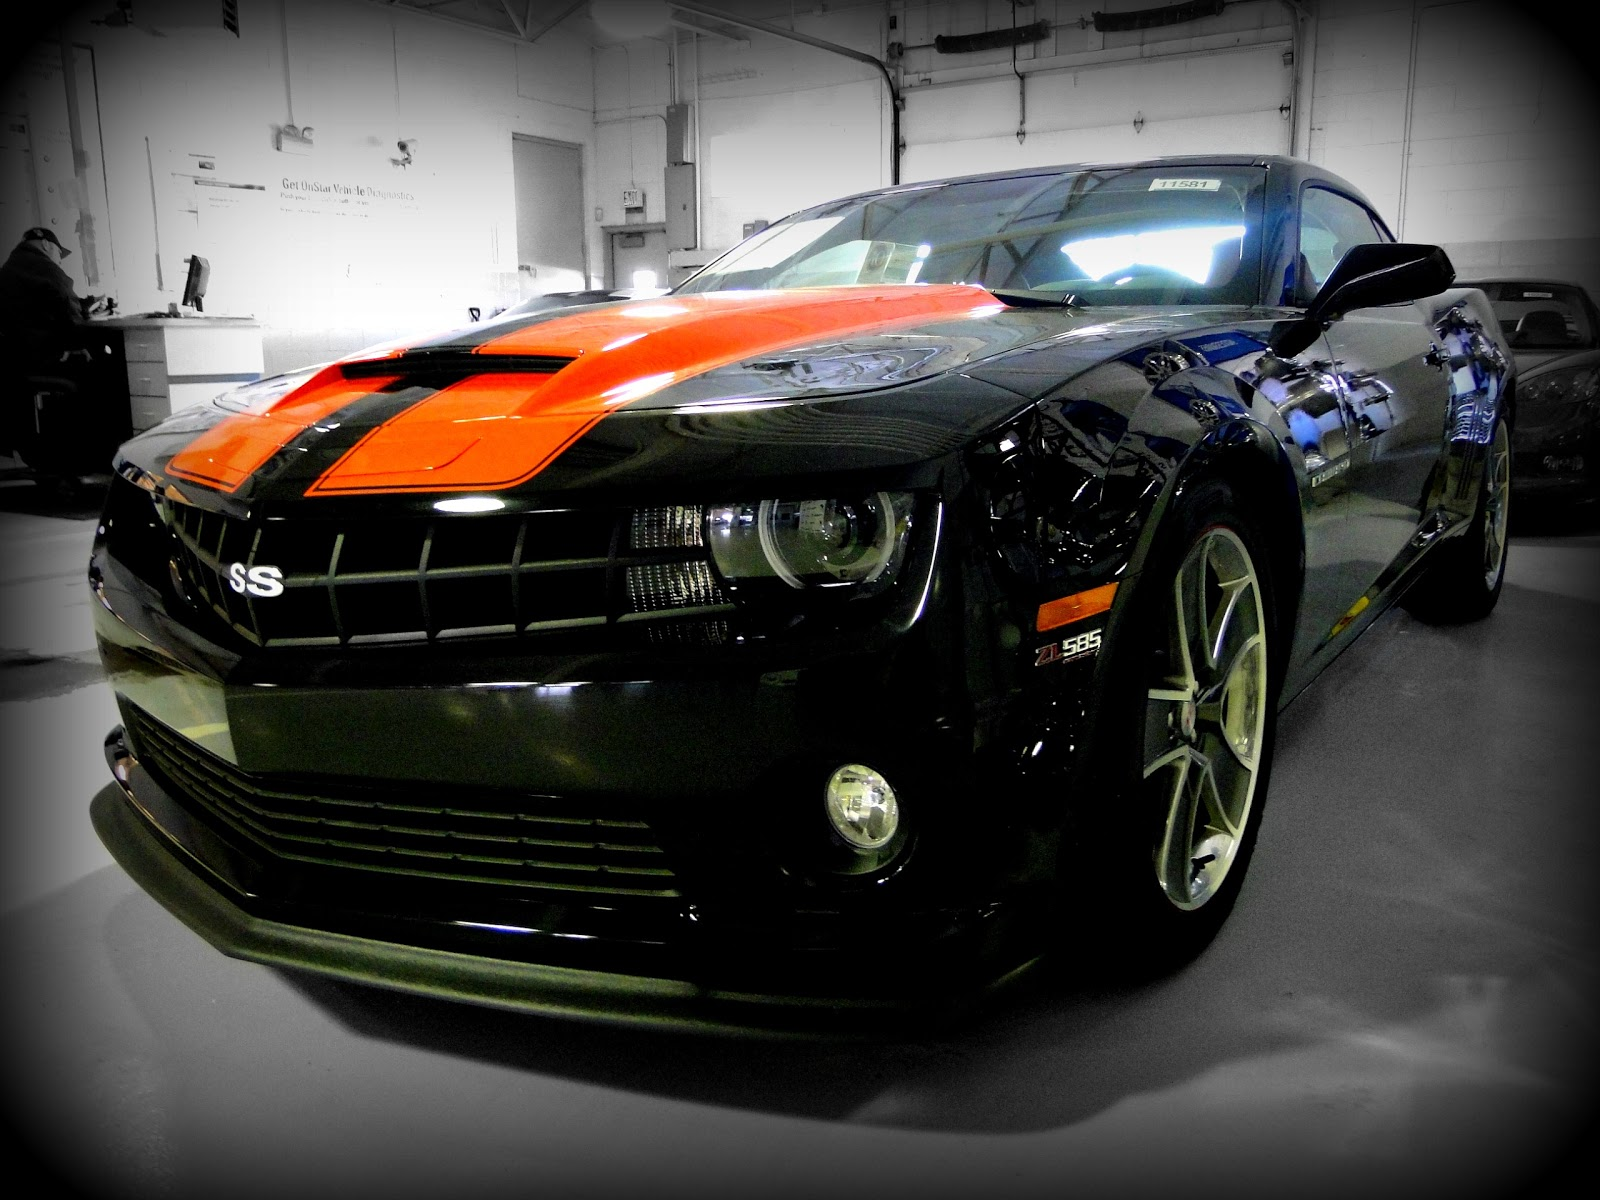 New supercharged 2011 Chevrolet Camaro 2SS SLP 585 hp